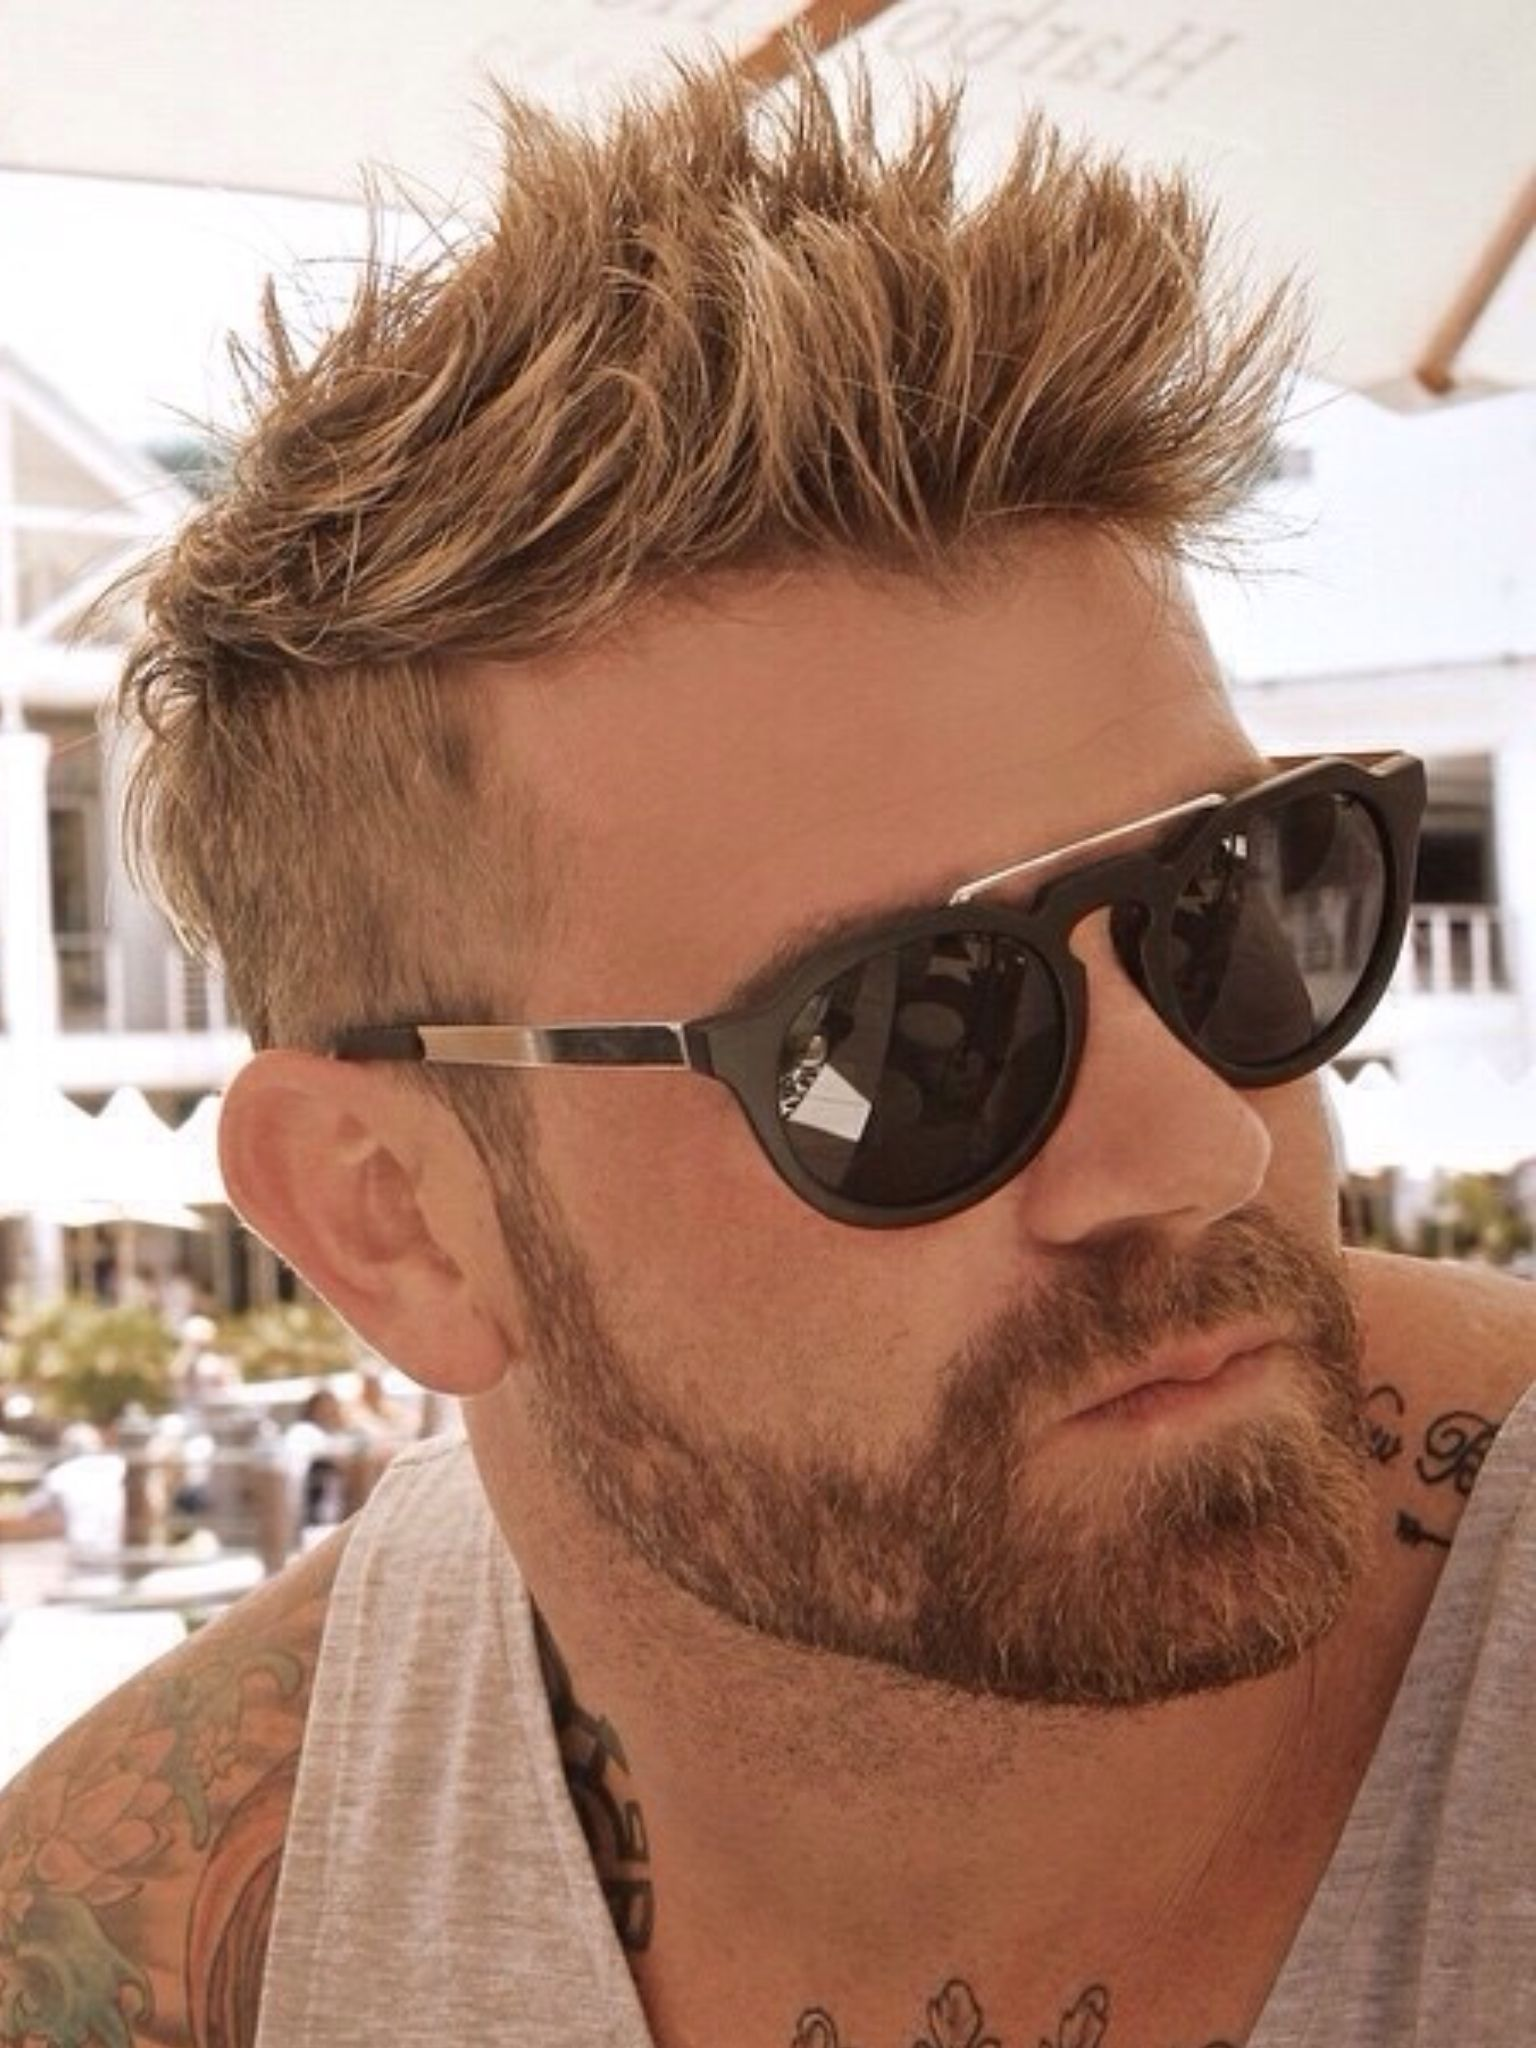 pin by danny o'donoghue on cuts | haircuts for men, hair